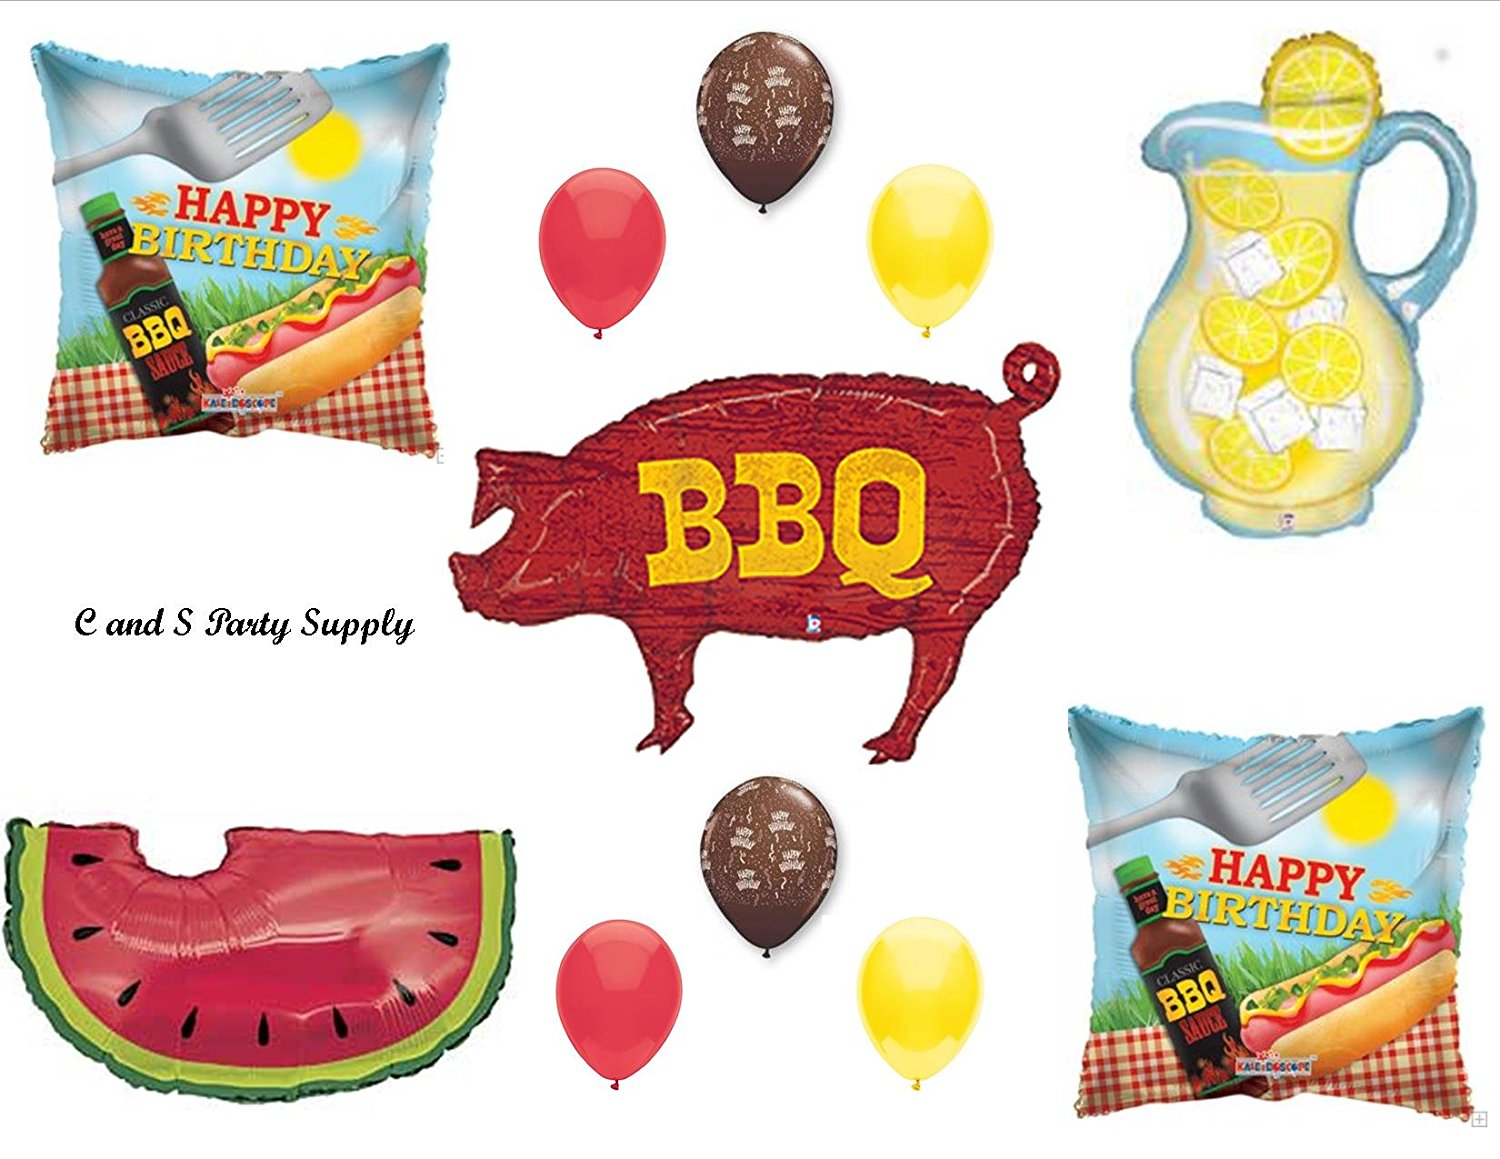 BBQ Cookout Birthday PARTY Balloons Decorations Supplies Lemonade Picnic Watermelon